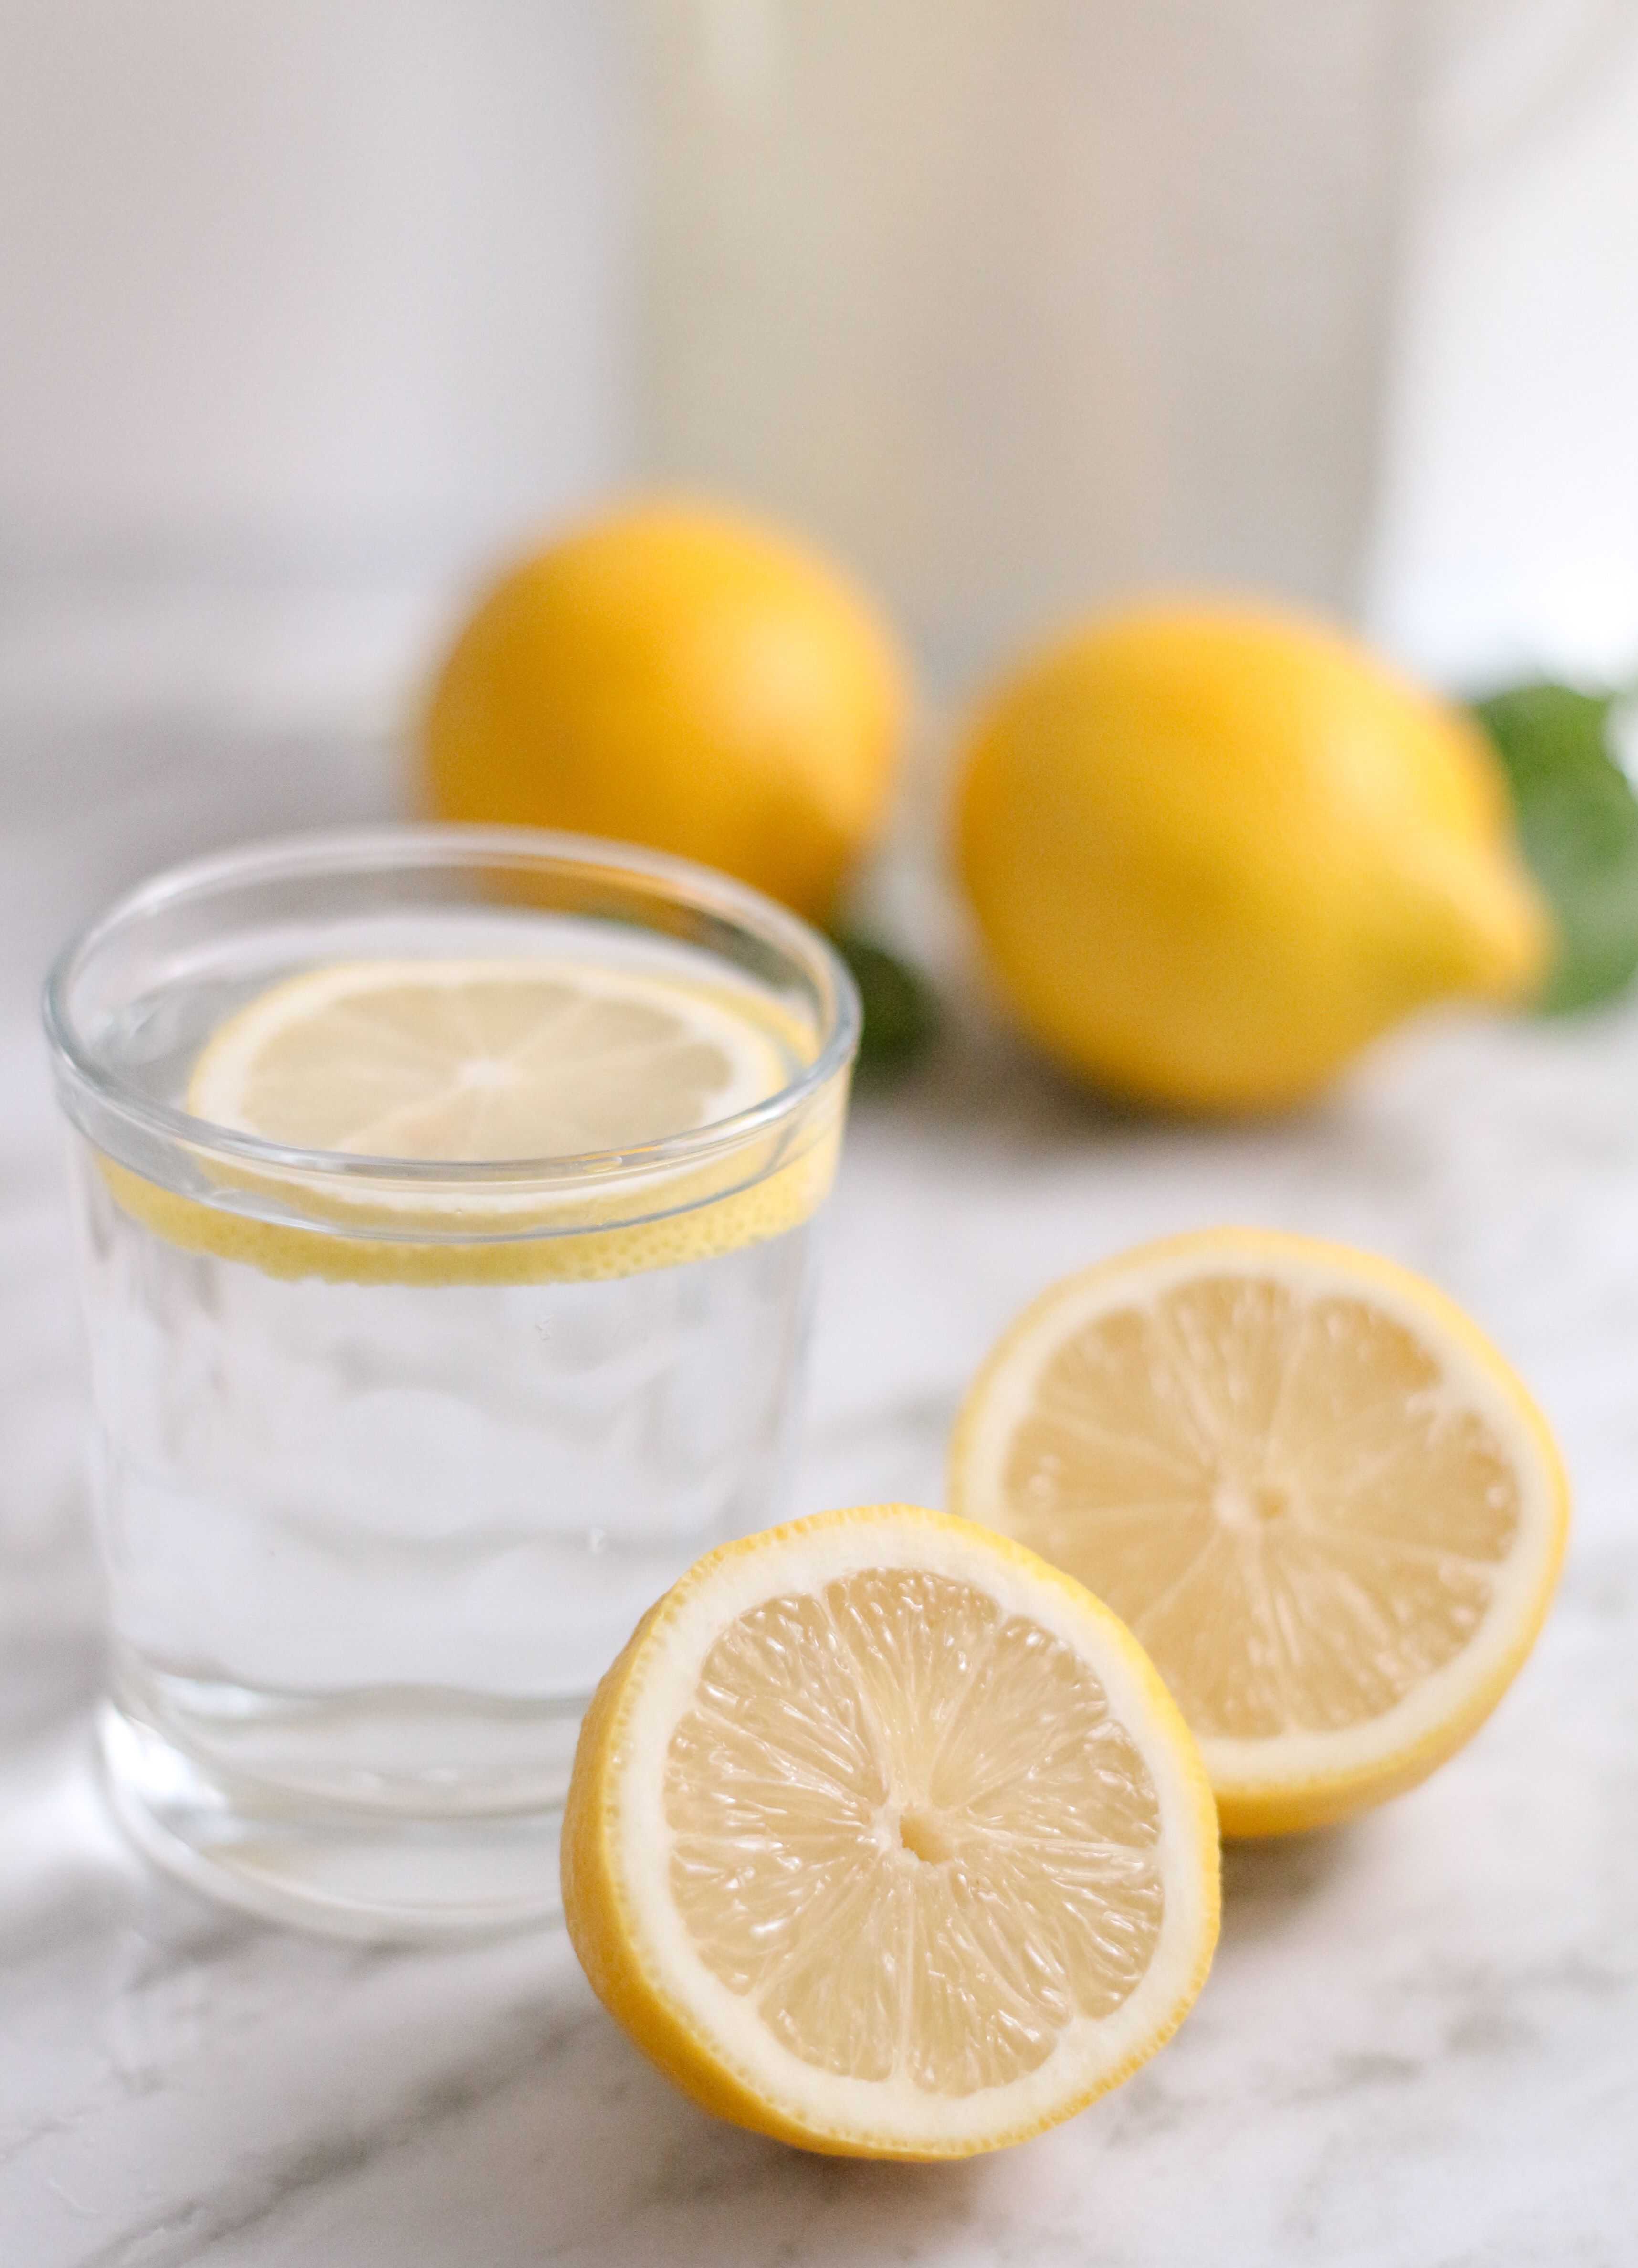 Fresh cut lemons and a glass of water with a lemon slice